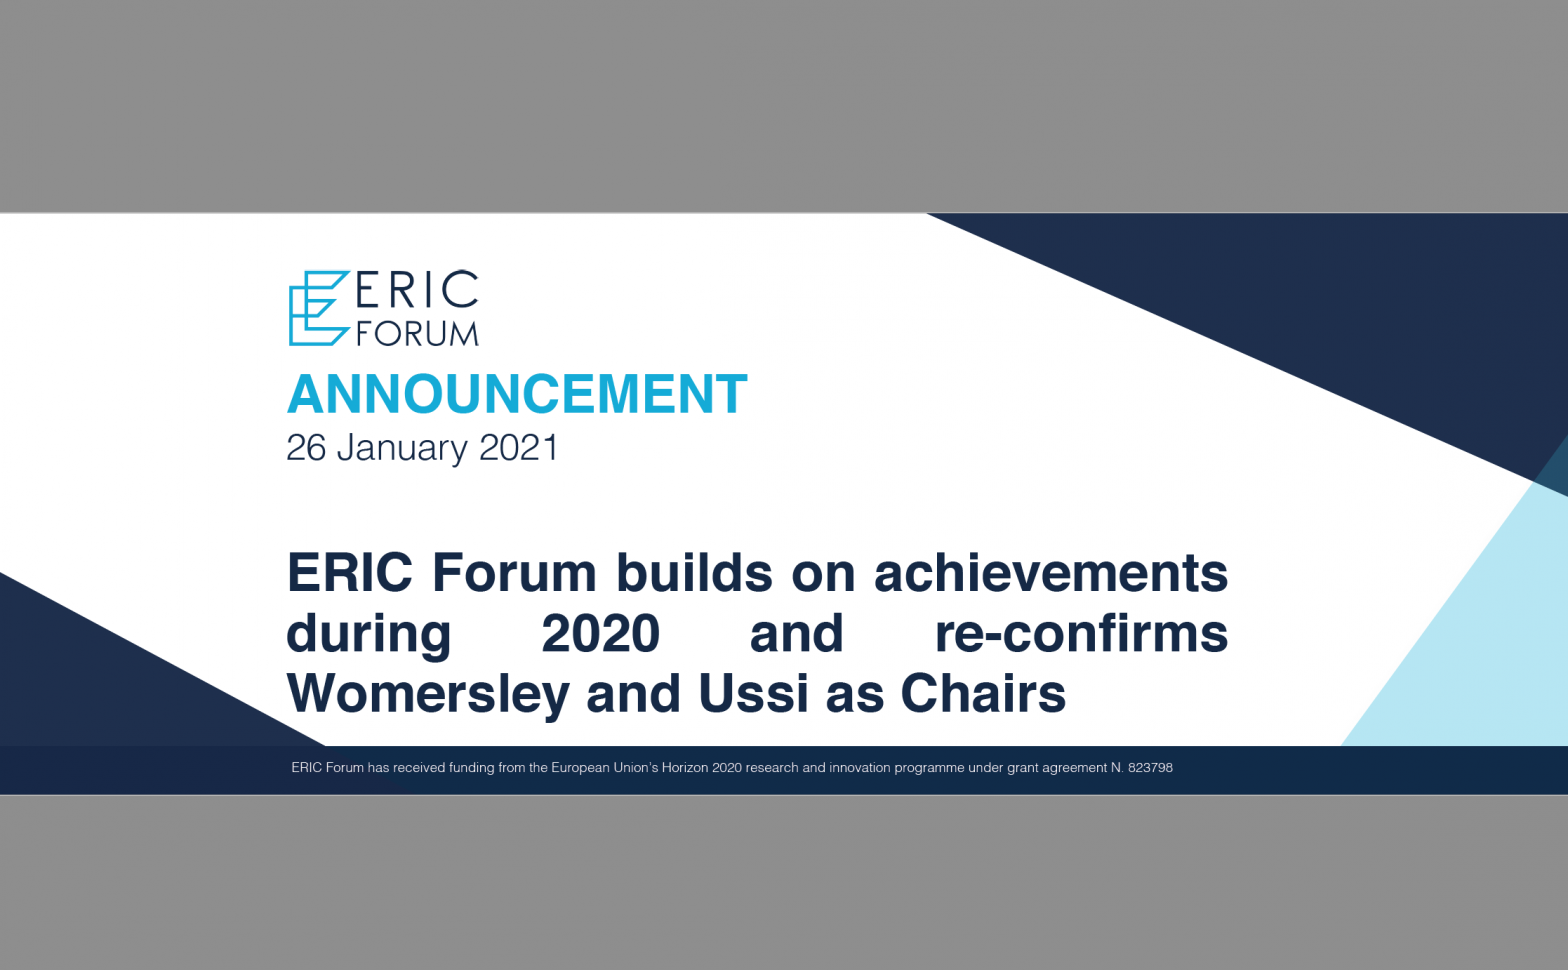 ERIC Forum builds on achievements during 2020 and